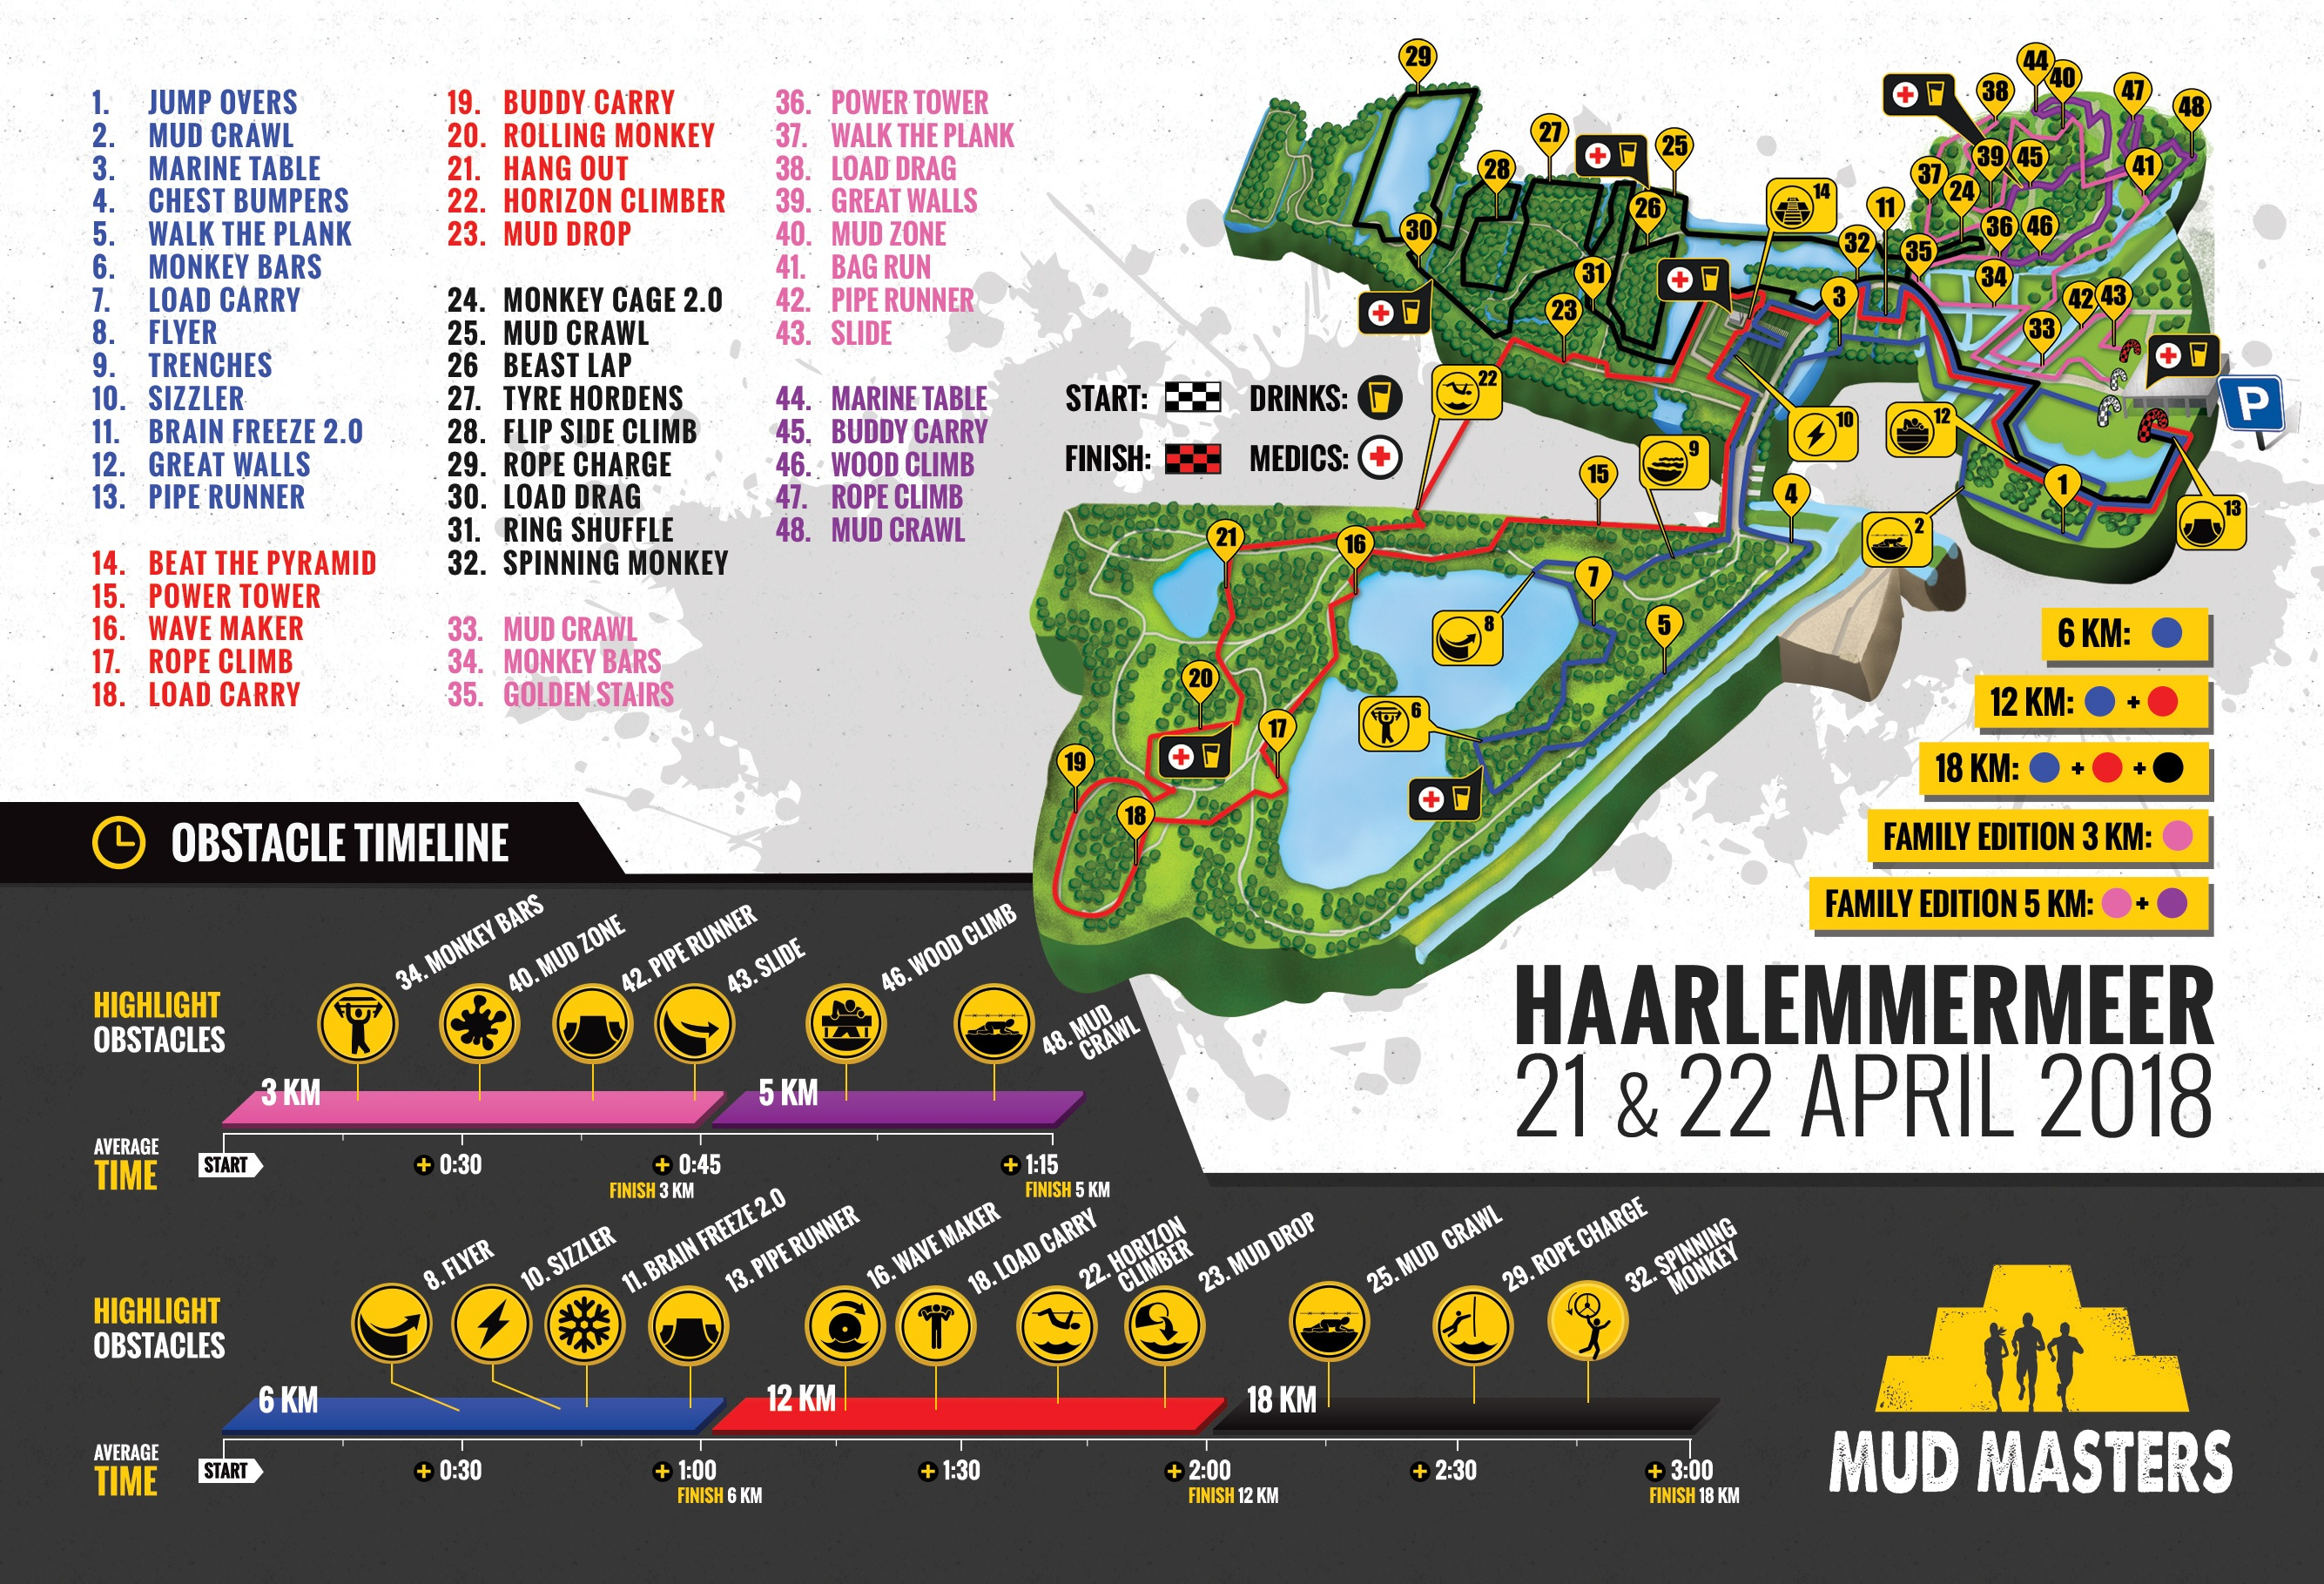 Haarlemmermeer 2018 - Mud Masters Obstacle Run